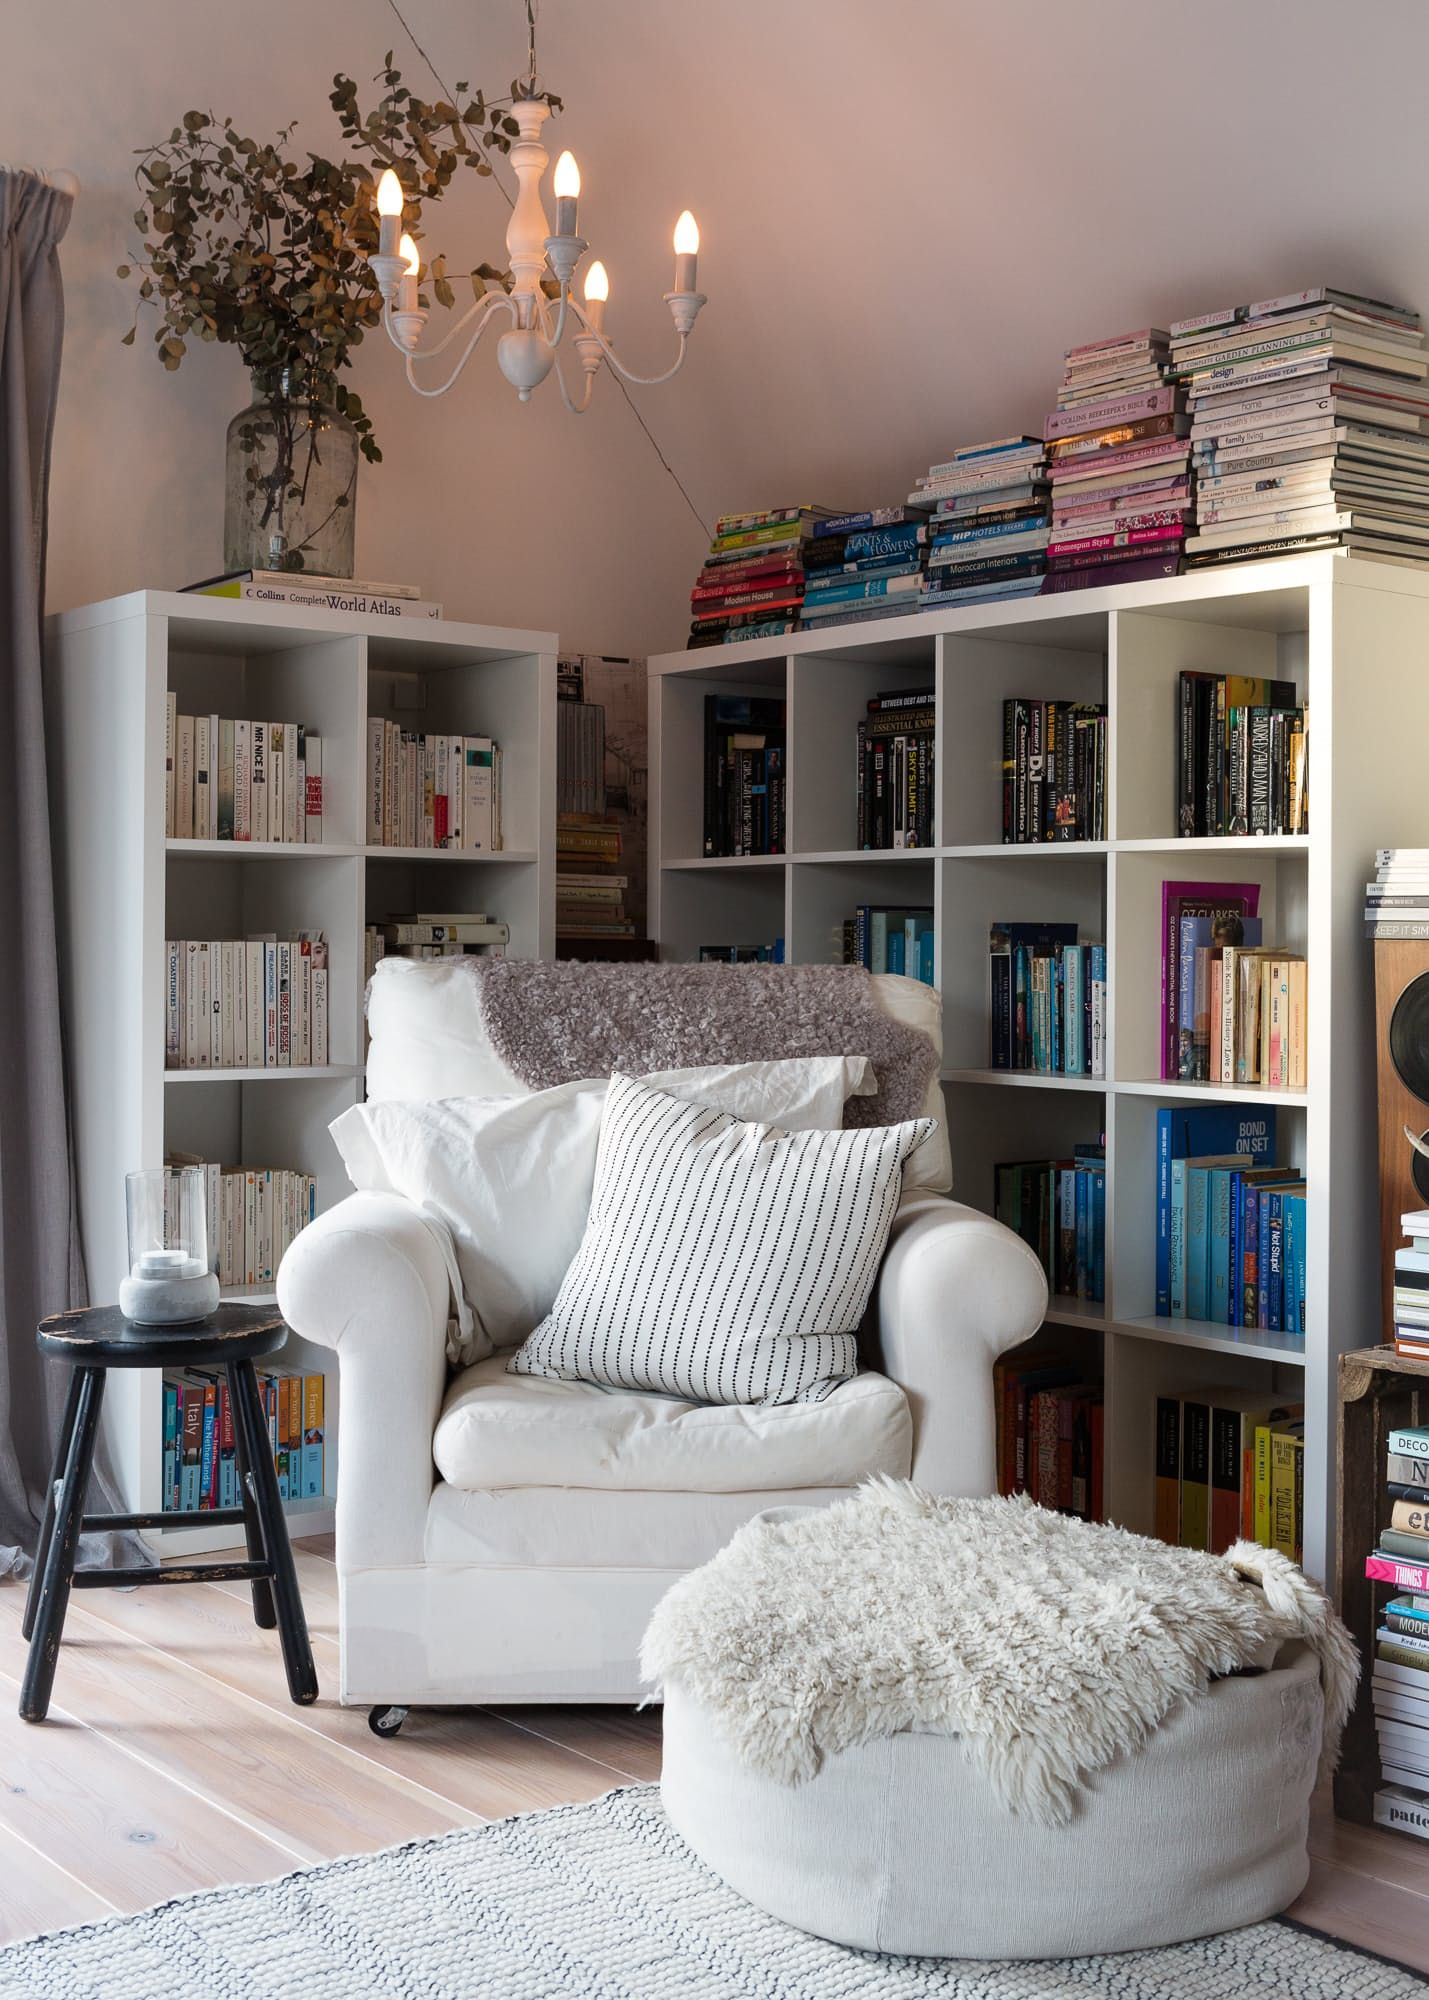 Reading Room Design Ideas: This Rustic English Home Has The Coziest Christmas Decor